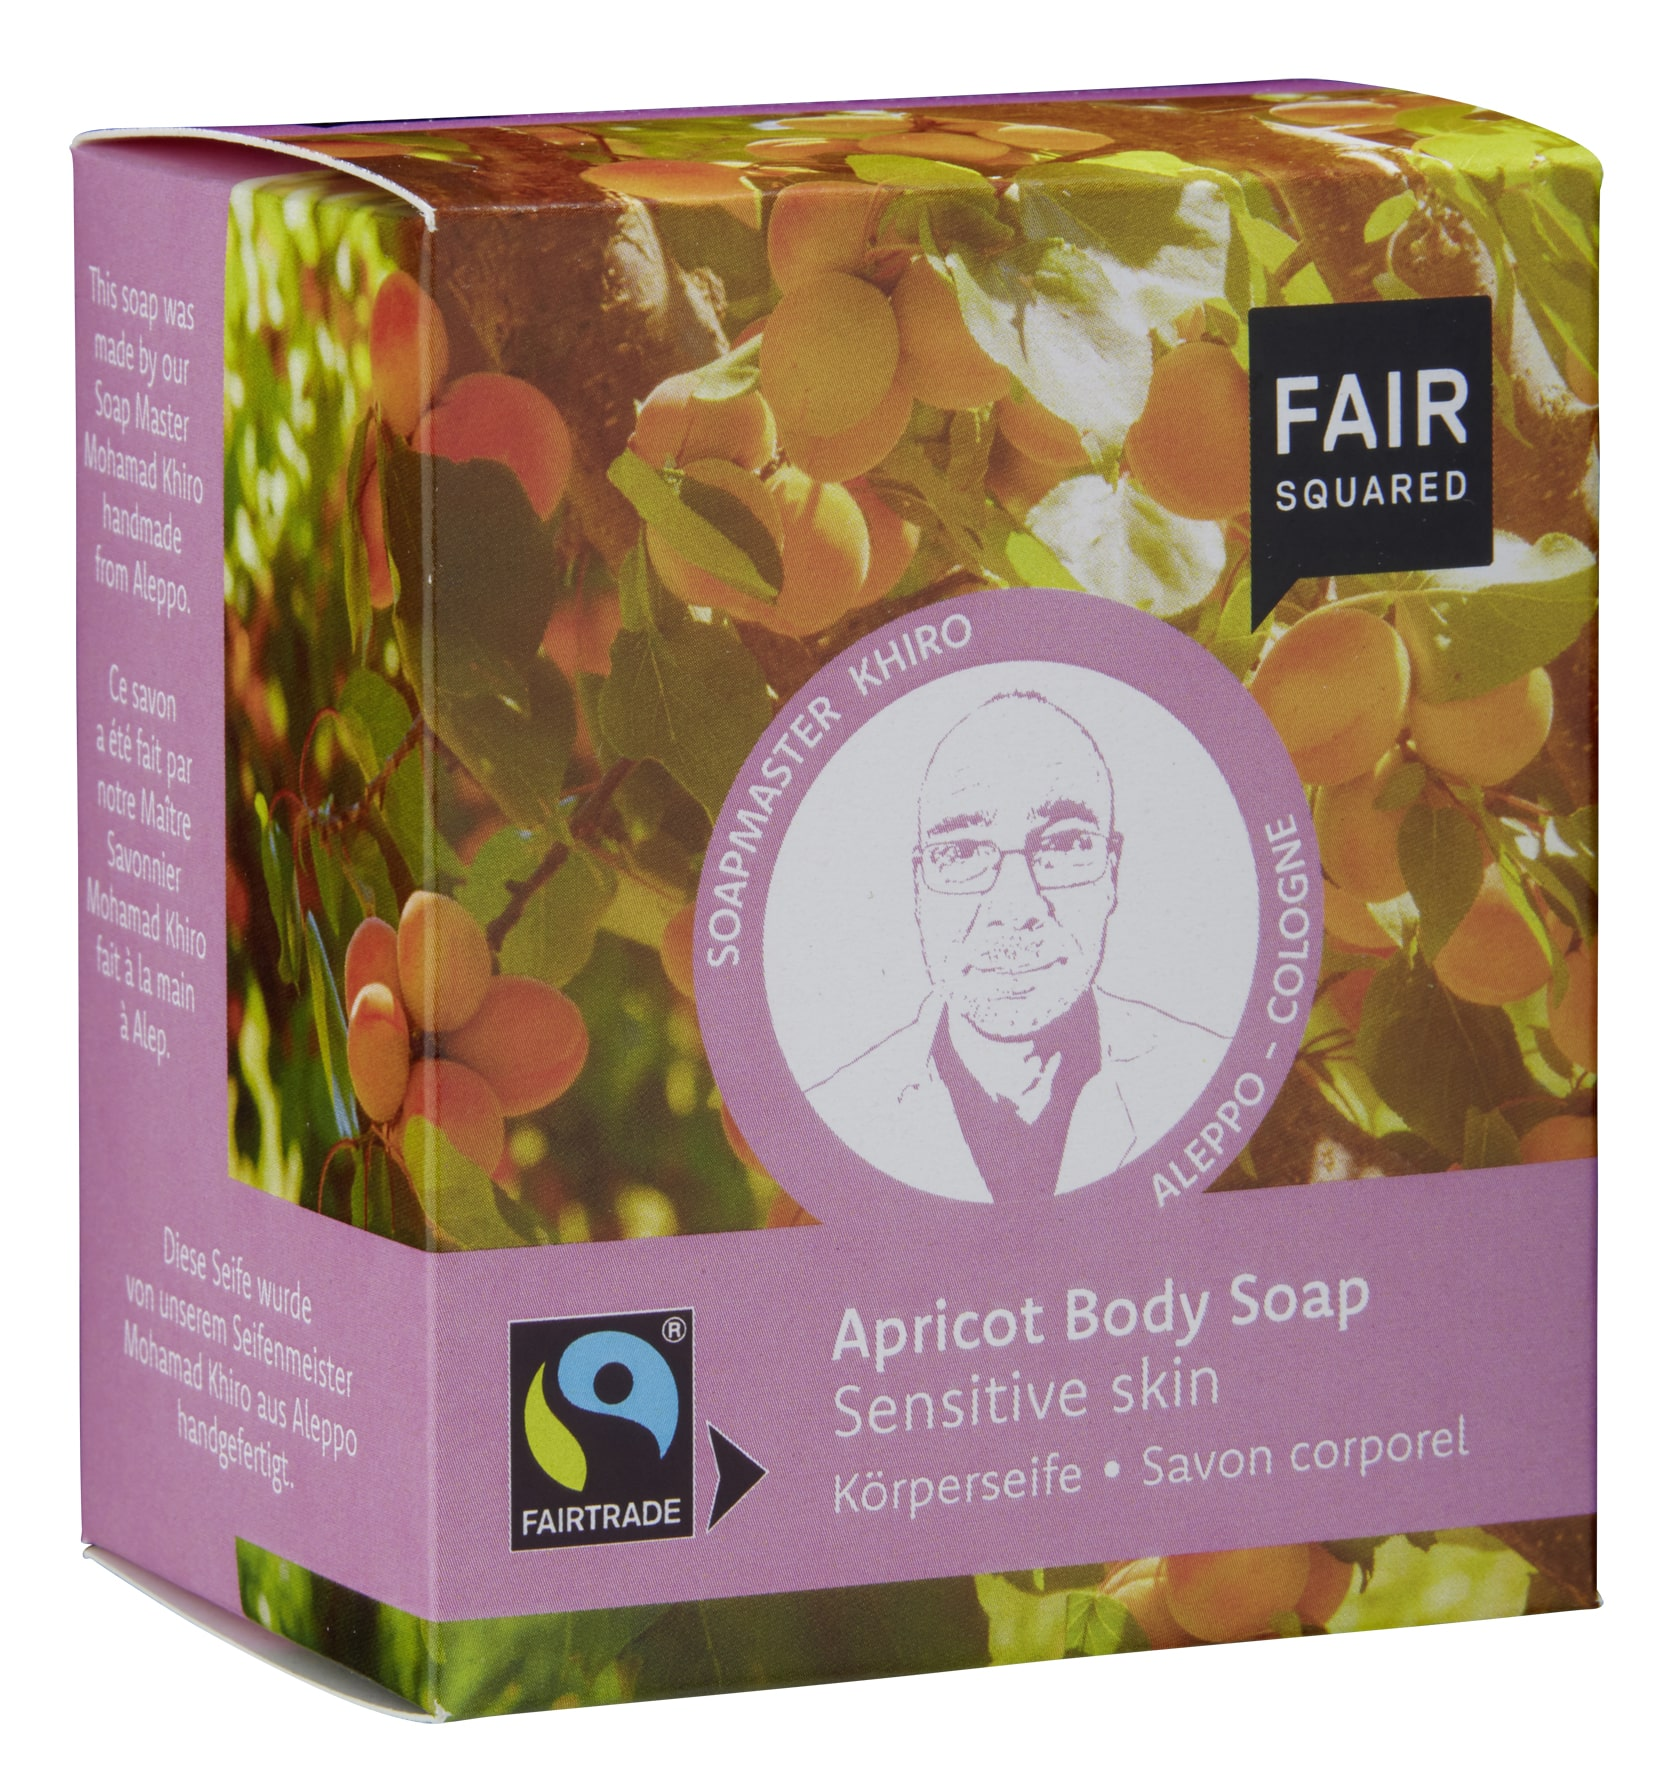 Apricot Body Soap Sensitive Skin